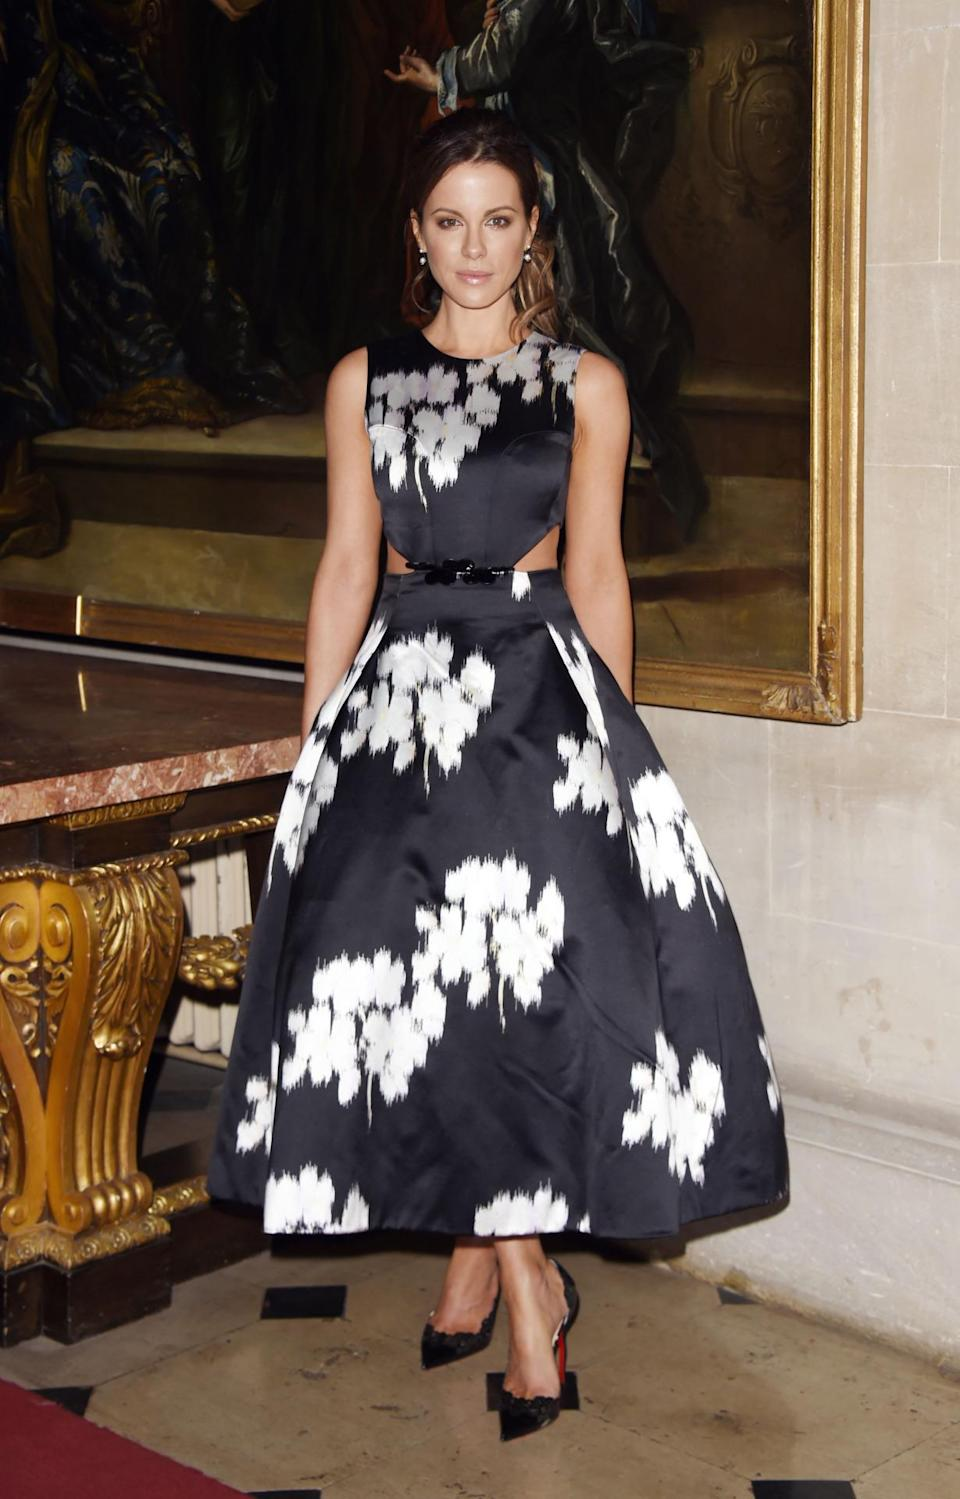 <p>Oh wow. That dress. Those shoes. Those taut abs. A wonderful look from the lovely Kate Beckinsale. <i>[Photo: Getty Images]</i></p>